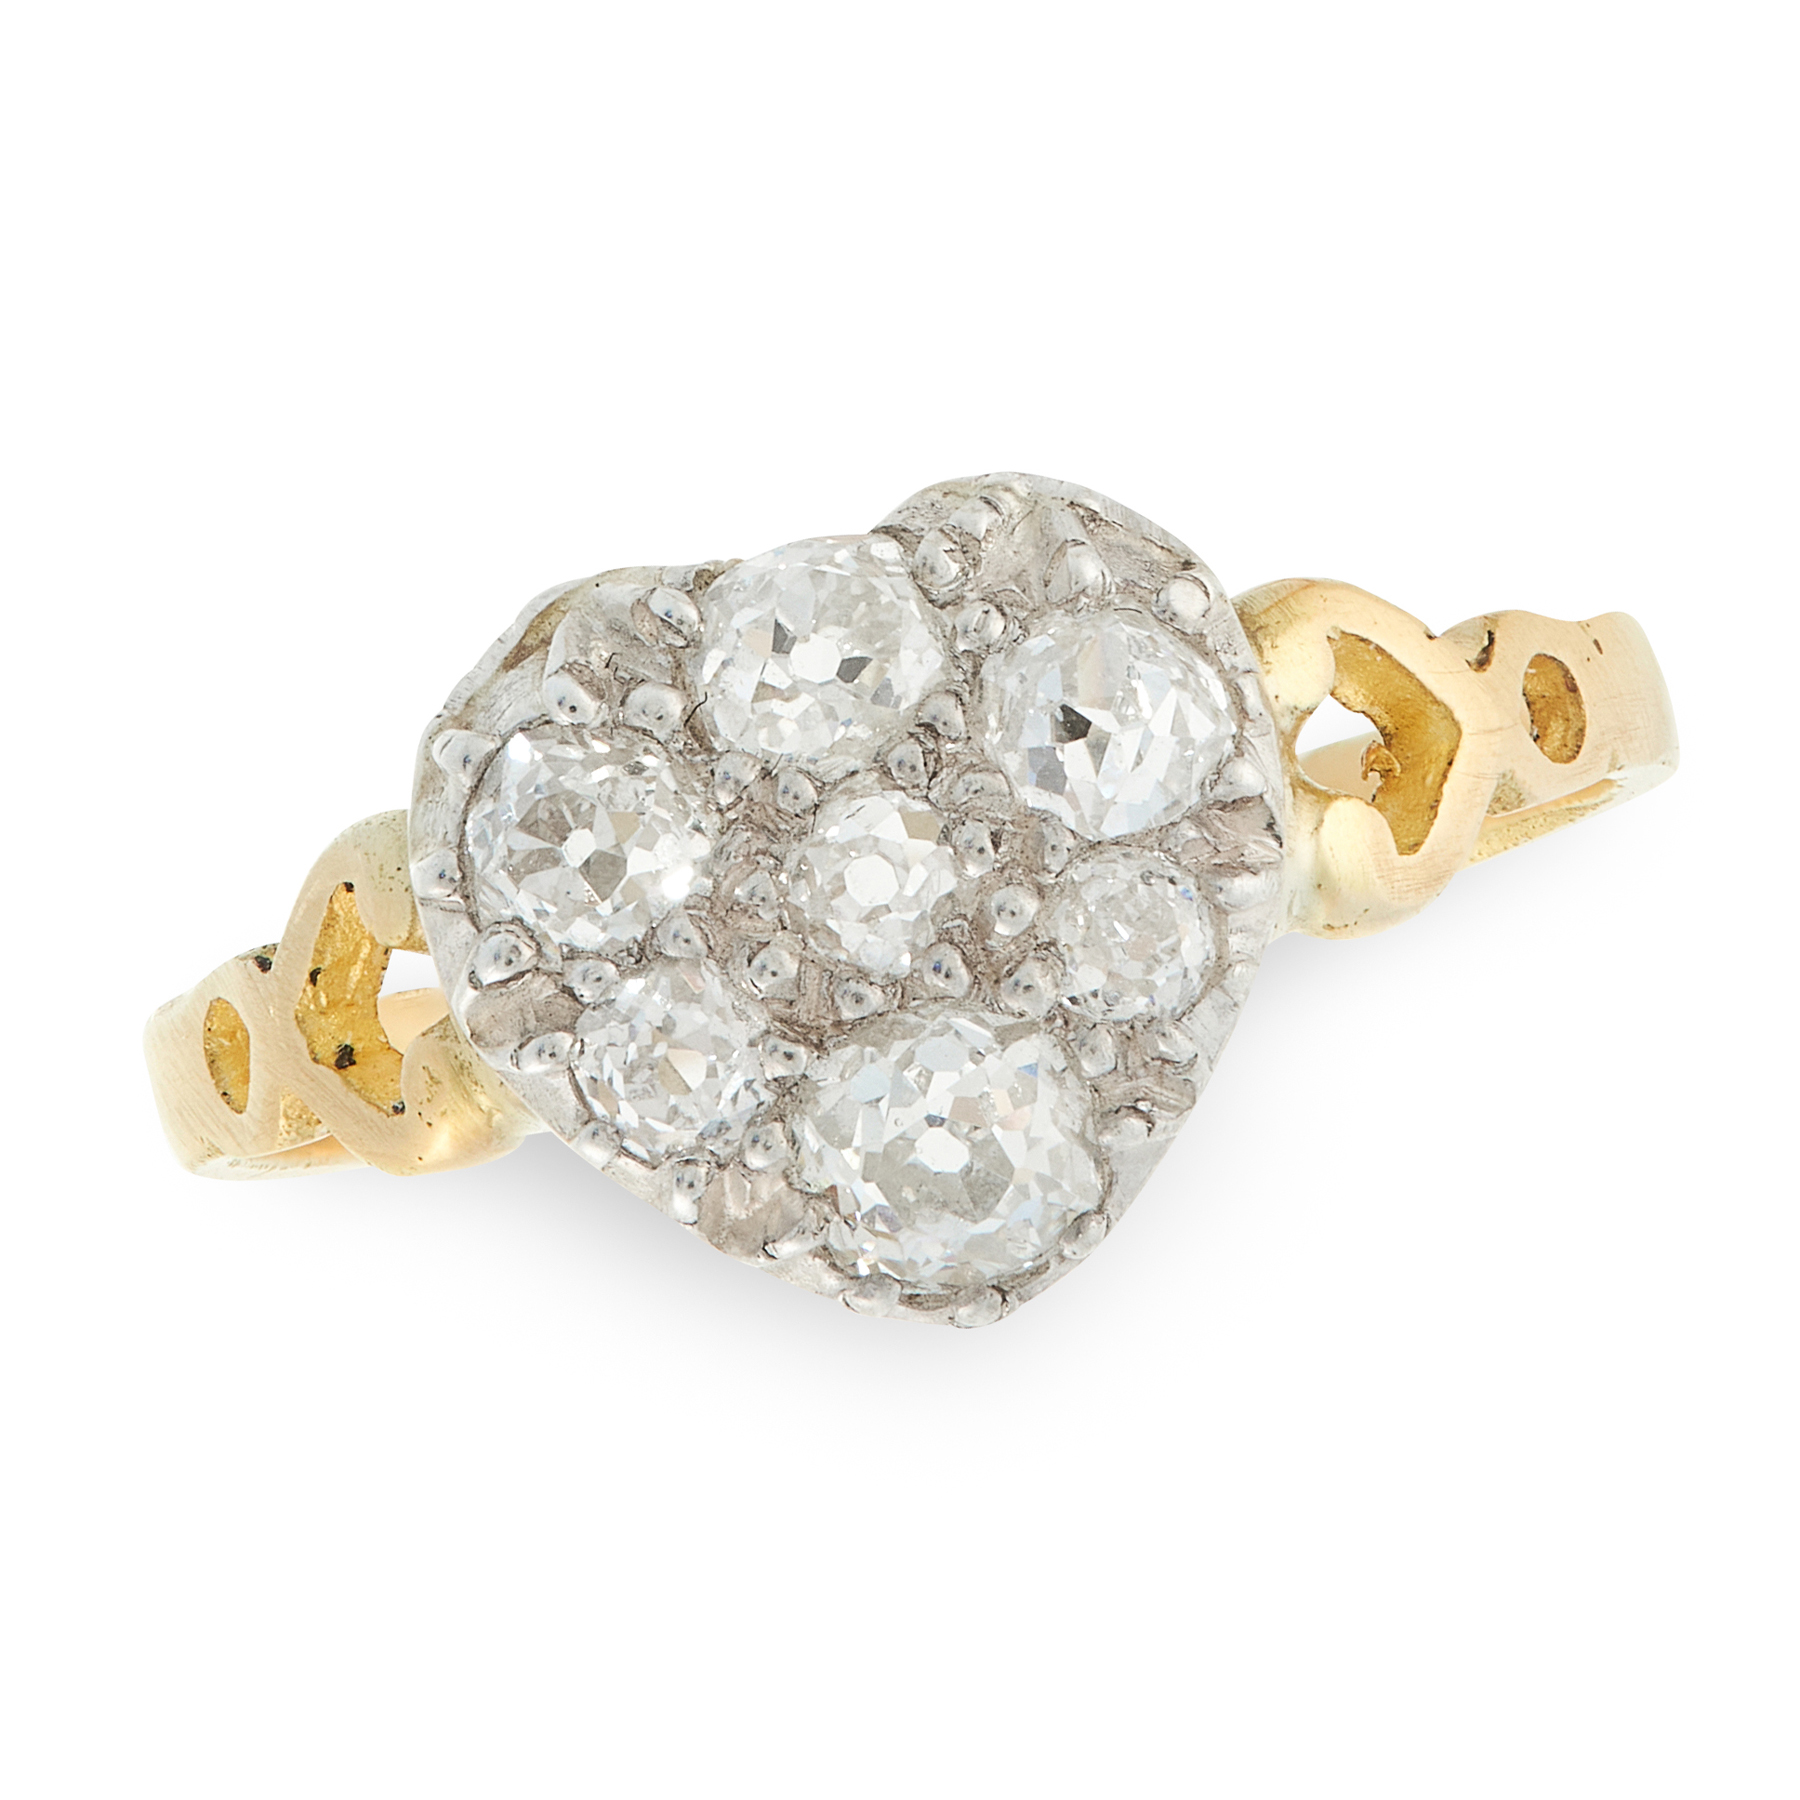 AN ANTIQUE DIAMOND DRESS RING in high carat yellow gold and silver, the face in the form of a heart, - Image 2 of 2